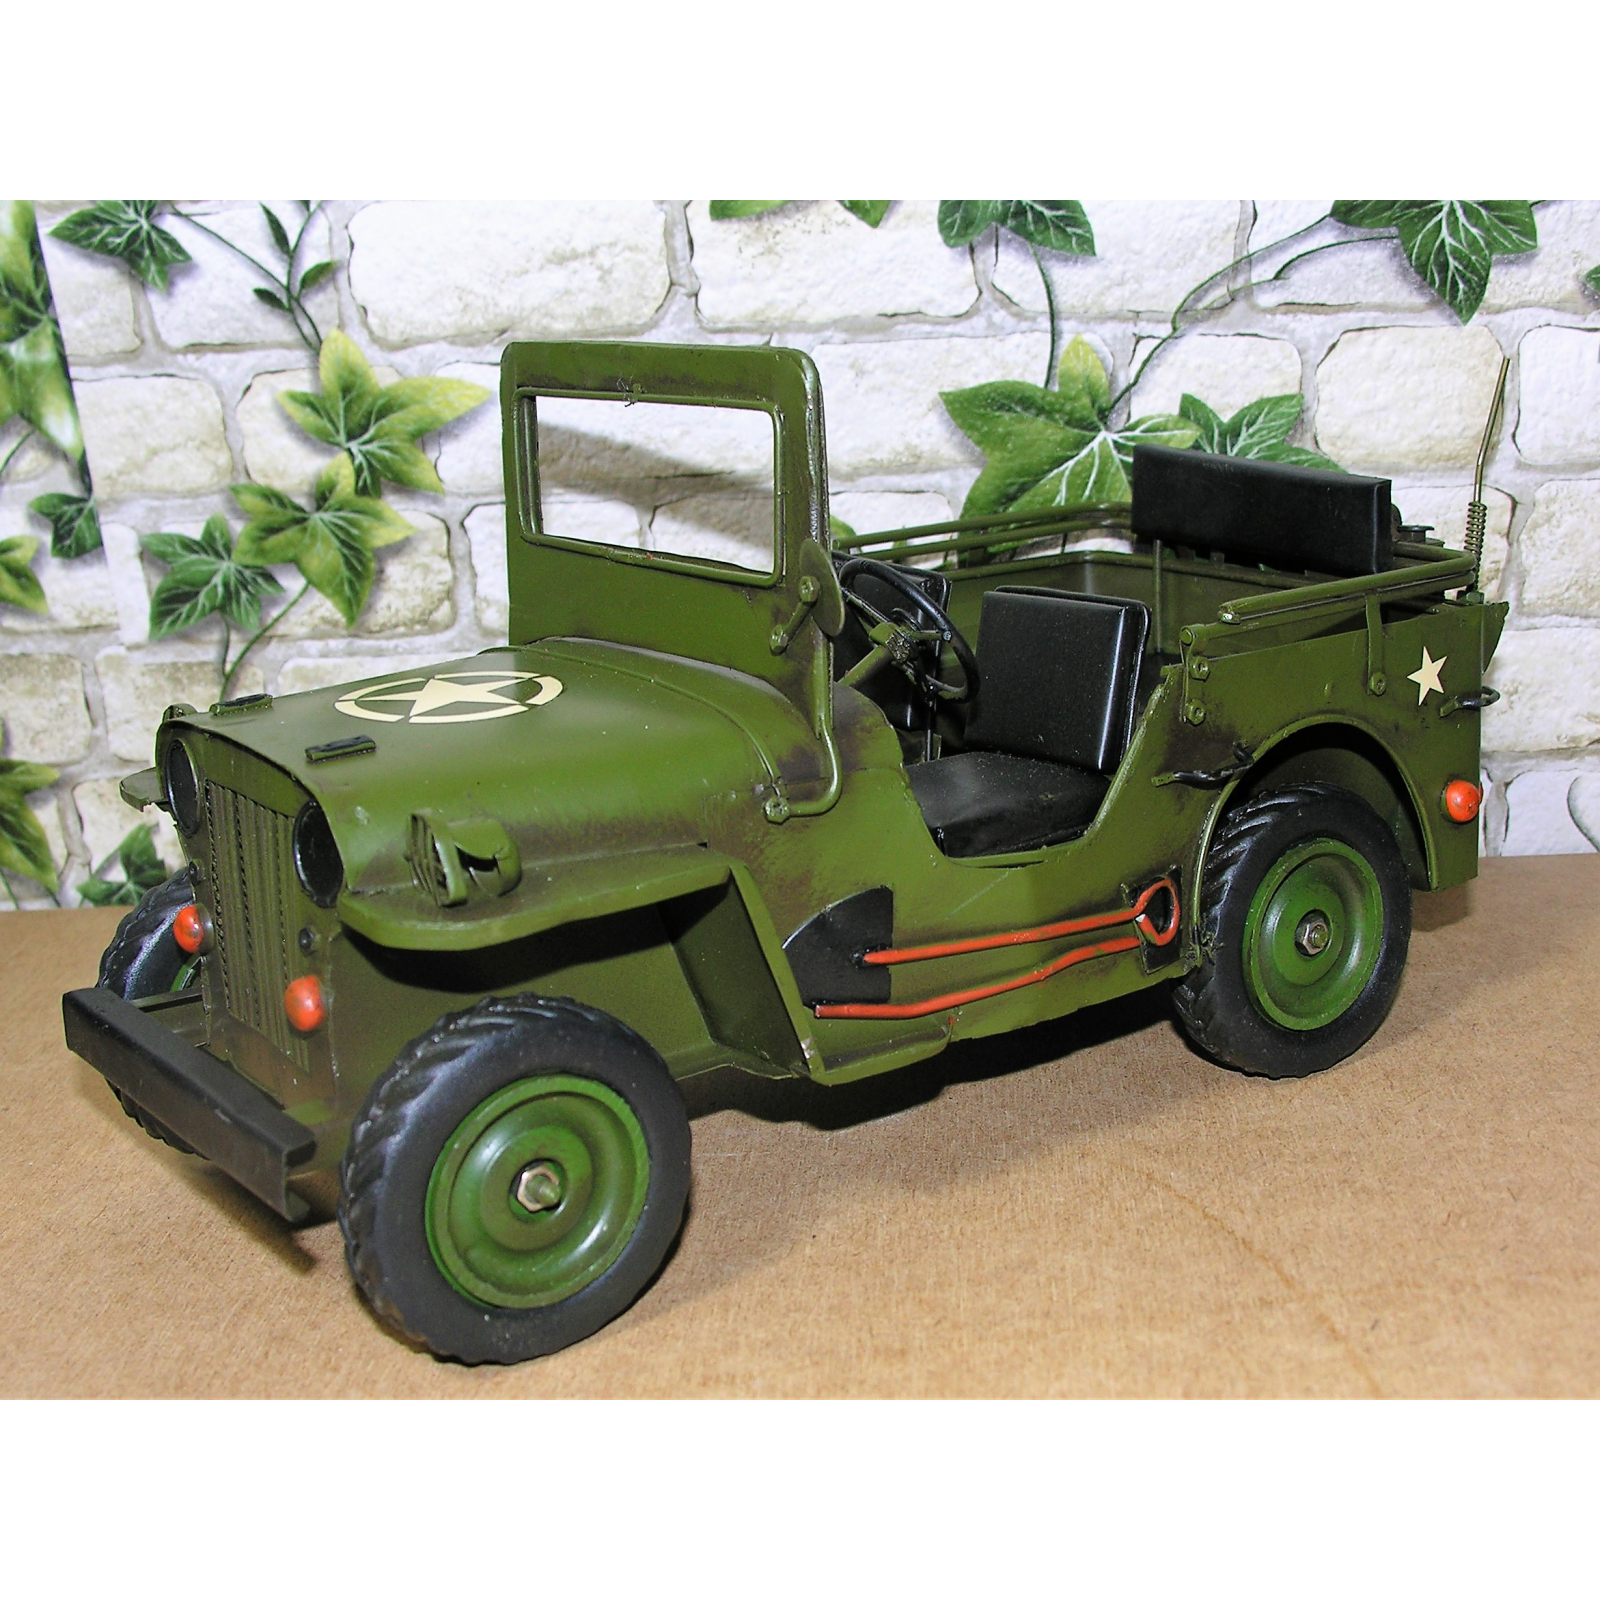 blechauto milit r jeep 30cm fahrzeug us retro antik stil modell auto oldtimer ebay. Black Bedroom Furniture Sets. Home Design Ideas